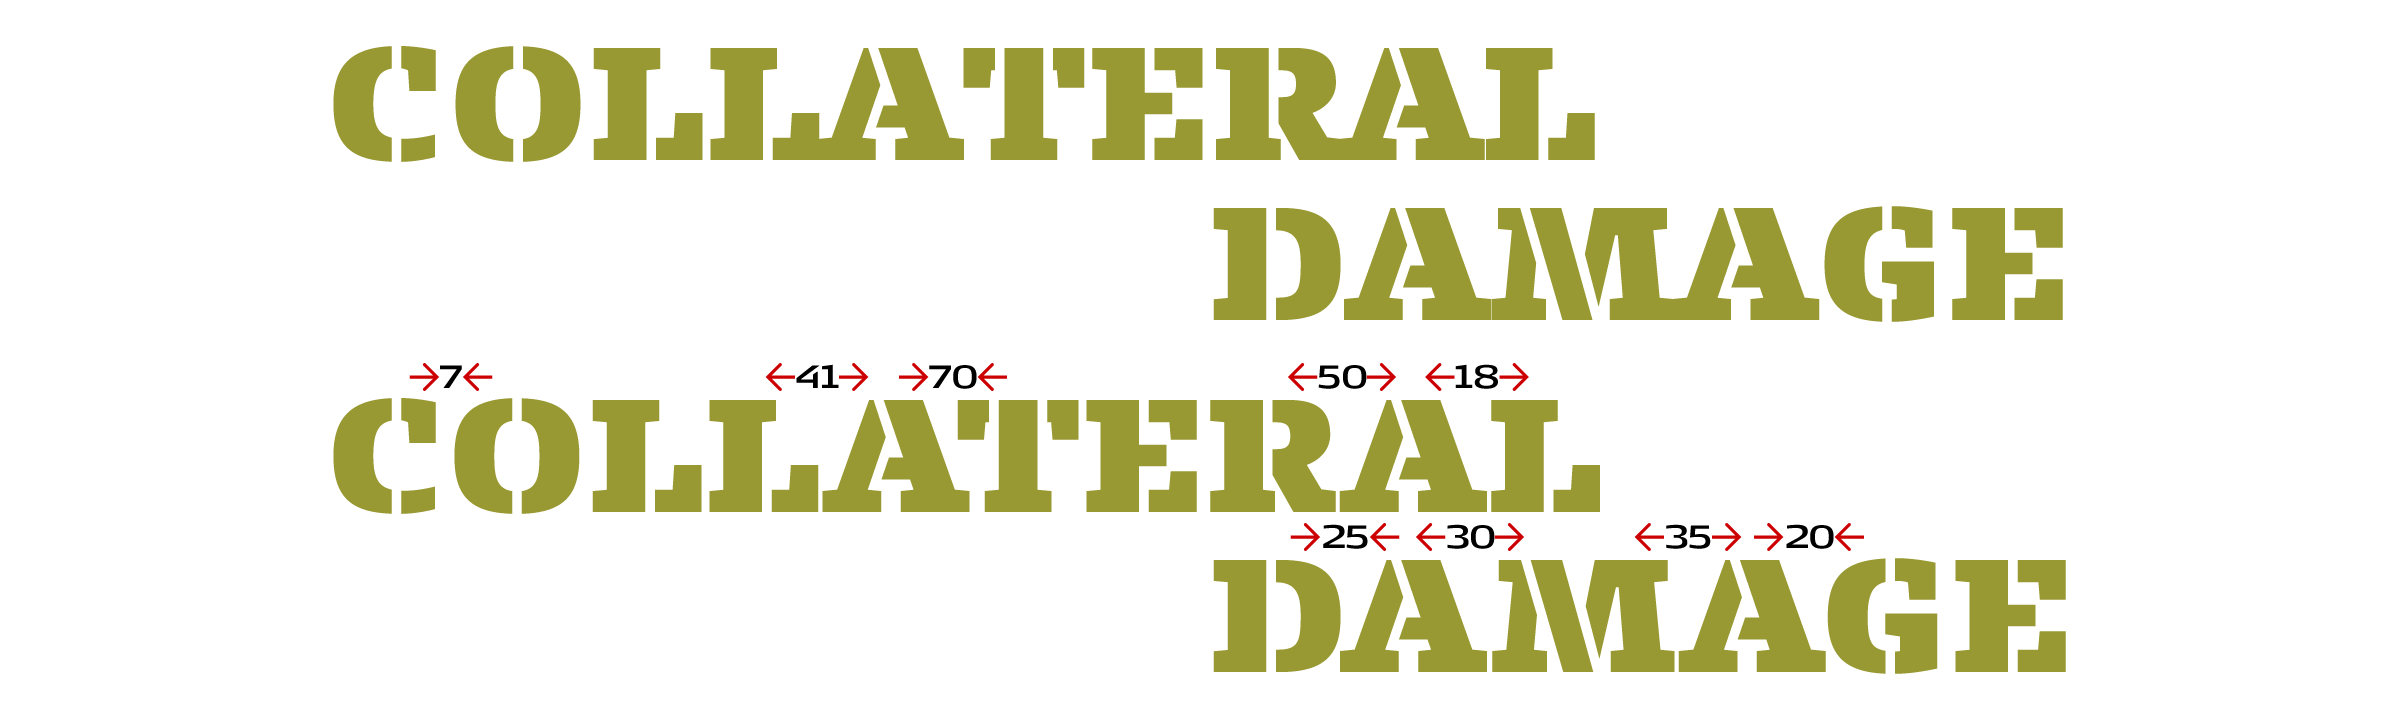 In the top line the built-in kerning was disabled in the brand new [FF Signa™ Slab Stencil](/families/ff-signa-slab-stencil). When set on a straight line, the words for the spoof logo are perfectly spaced in the bottom line, thanks to the careful kerning by [Ole Søndergaard](/designers/ole-sondergaard).